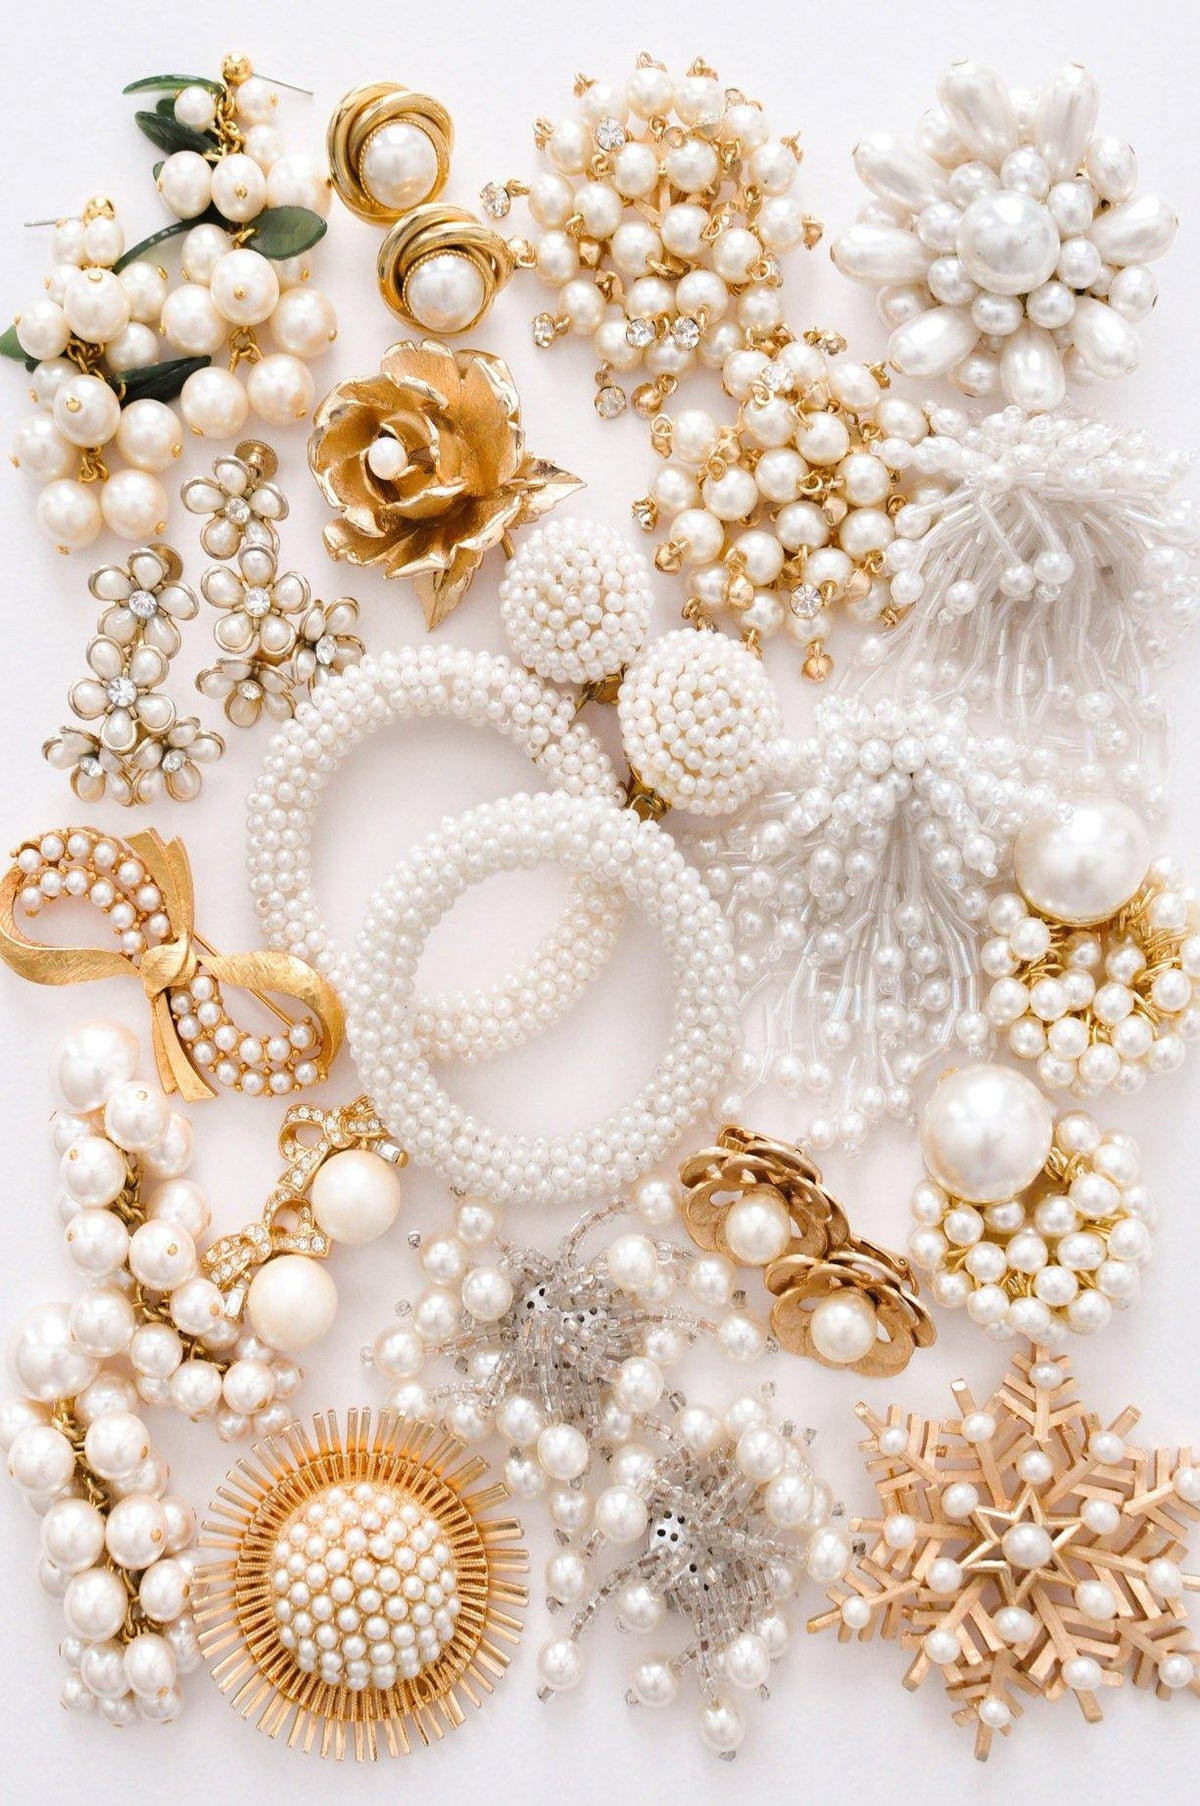 Vintage pearl statement jewelry from Sweet & Spark.